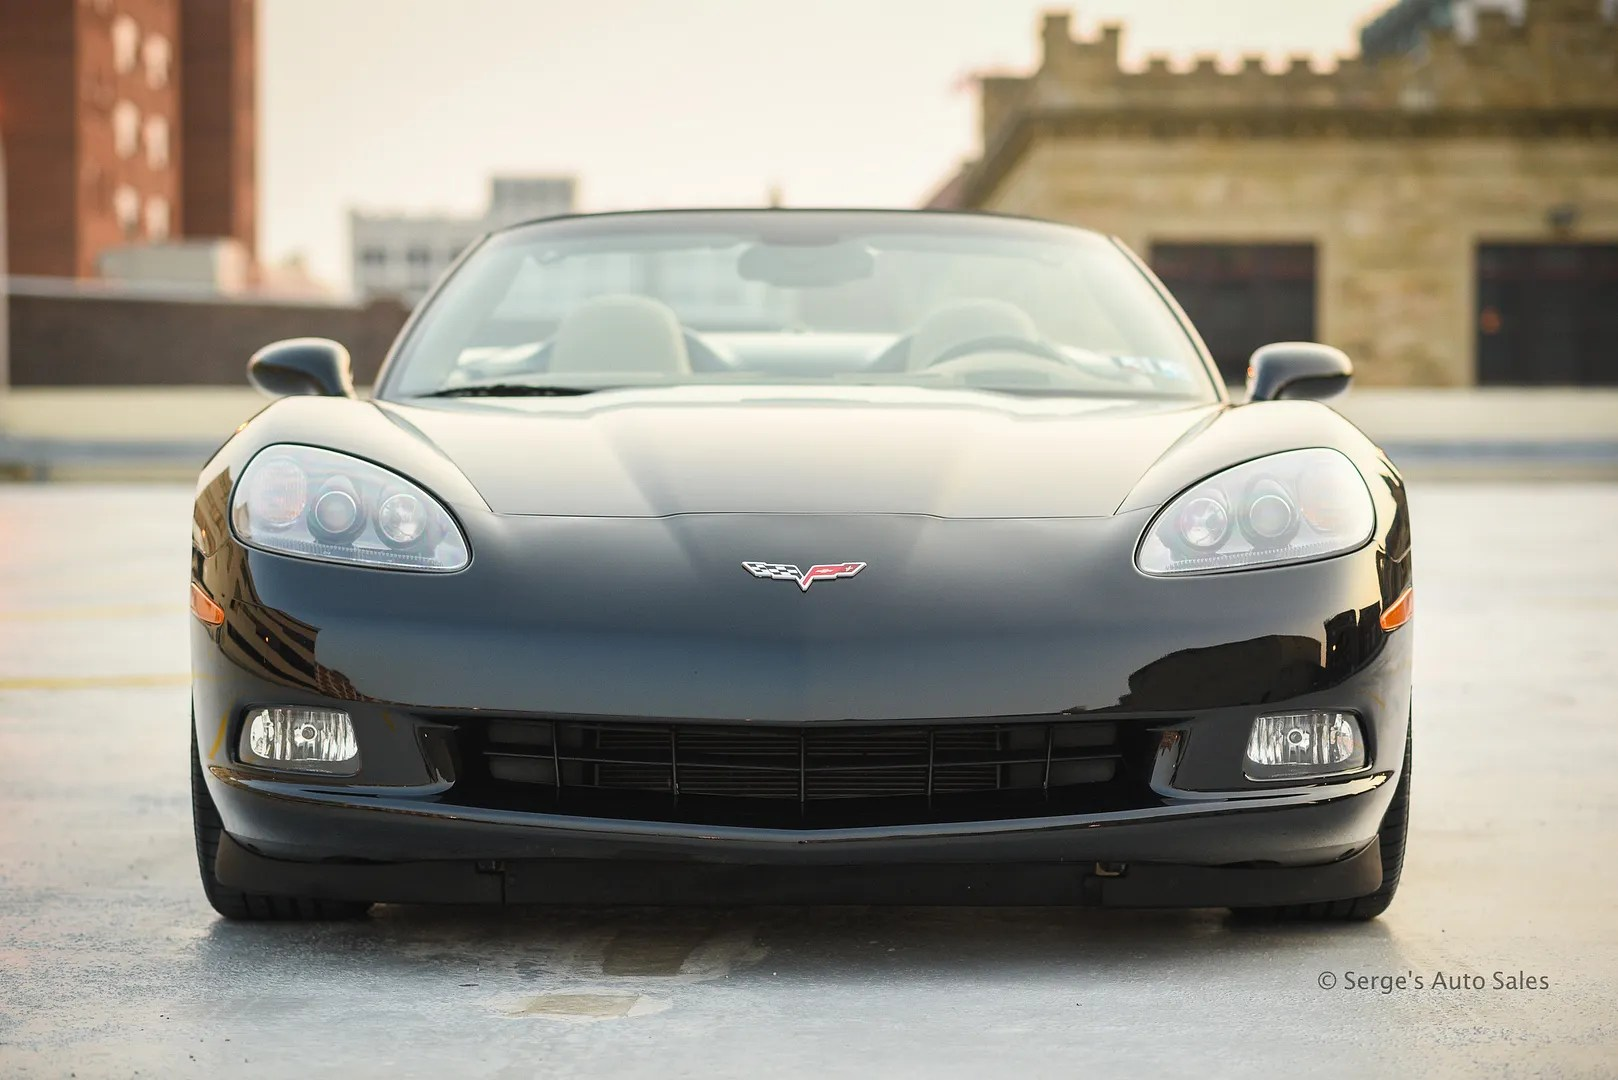 photo 2005-C6-Corvette-Convertible-For-Sale-Scranton-Serges-Auto-Sales-dealer--32_zps8fouoidt.jpg